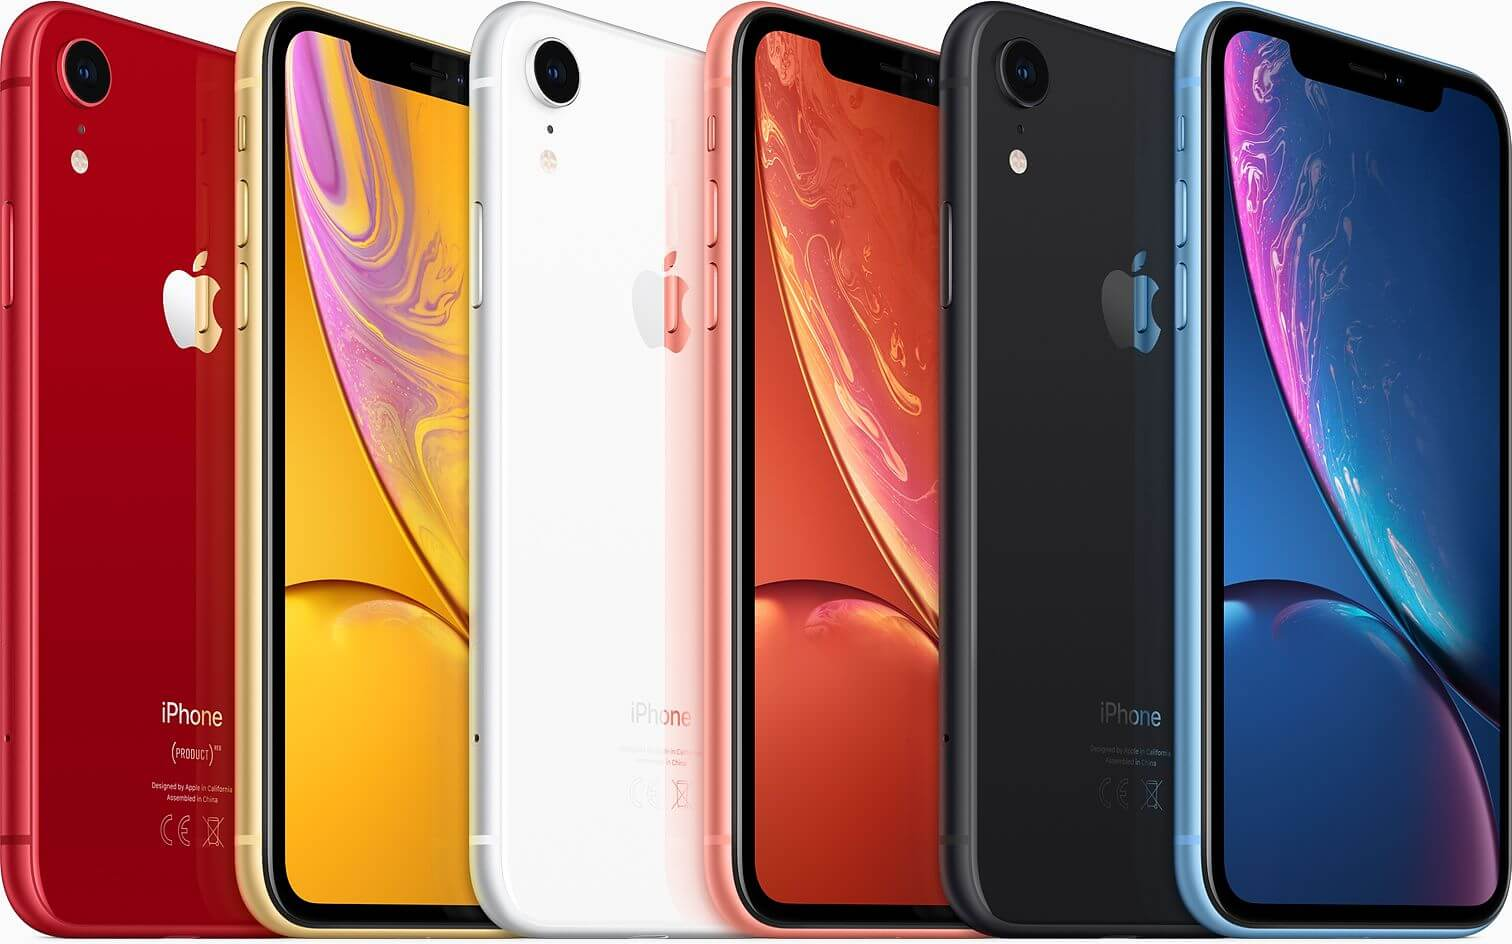 iPhone XR - Apple